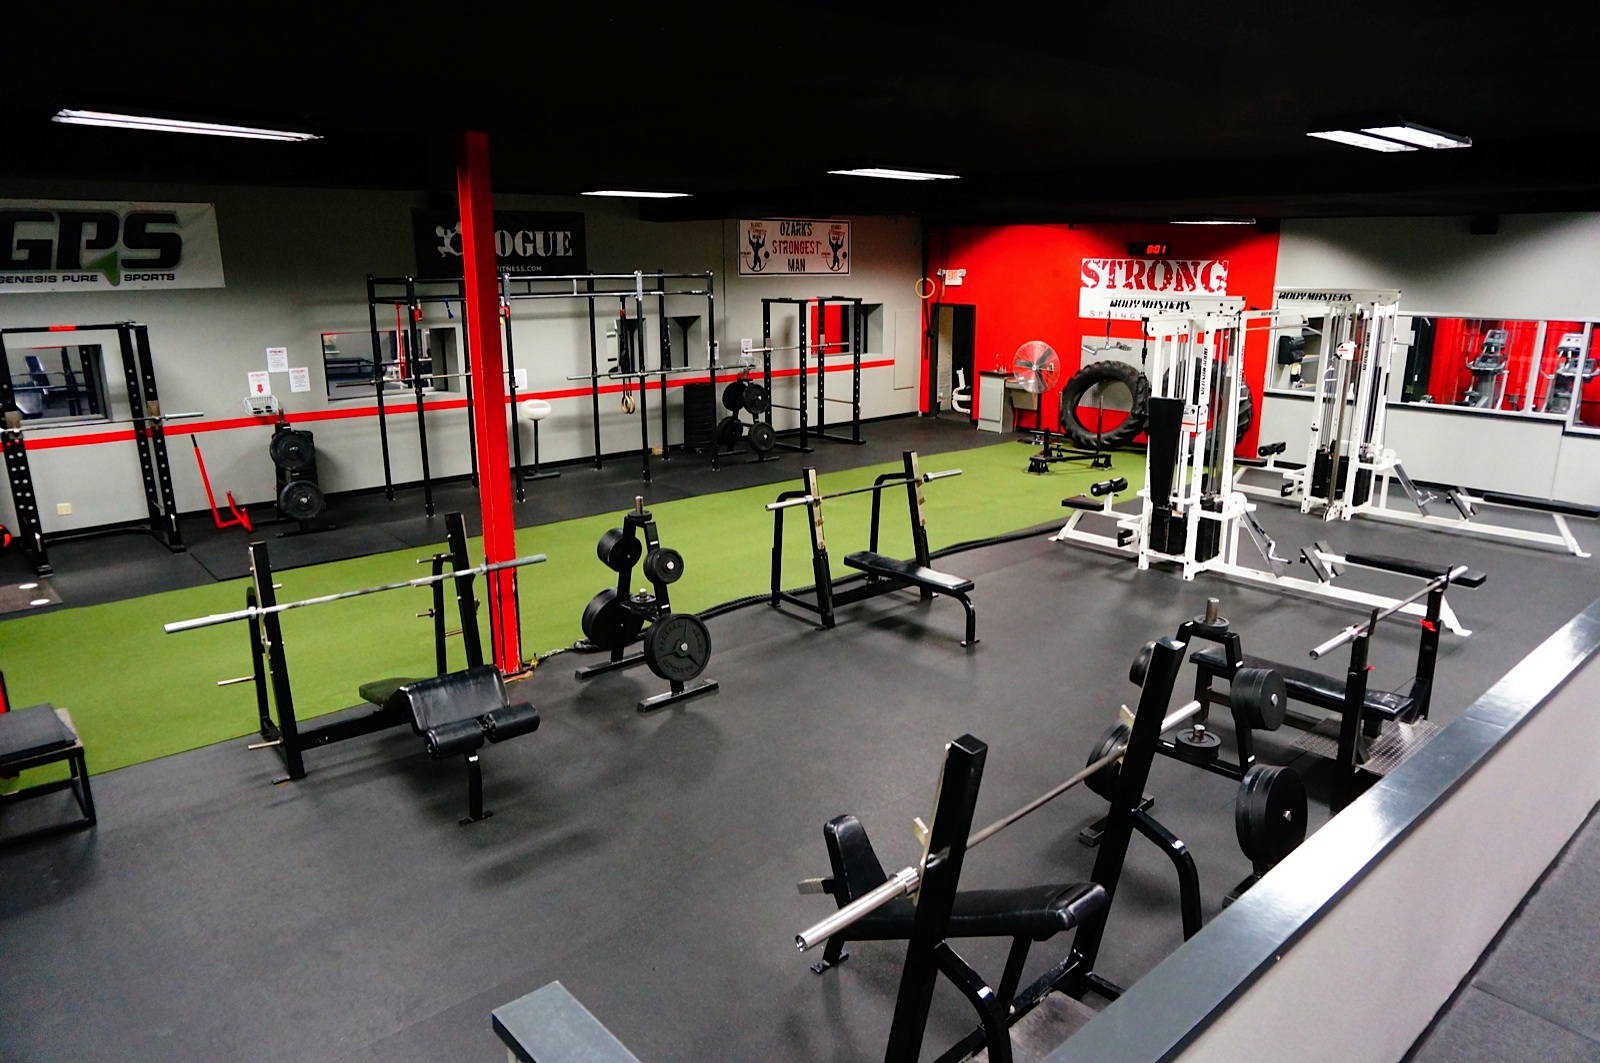 Warehouse gym business plan for 2000 sq ft gym layout